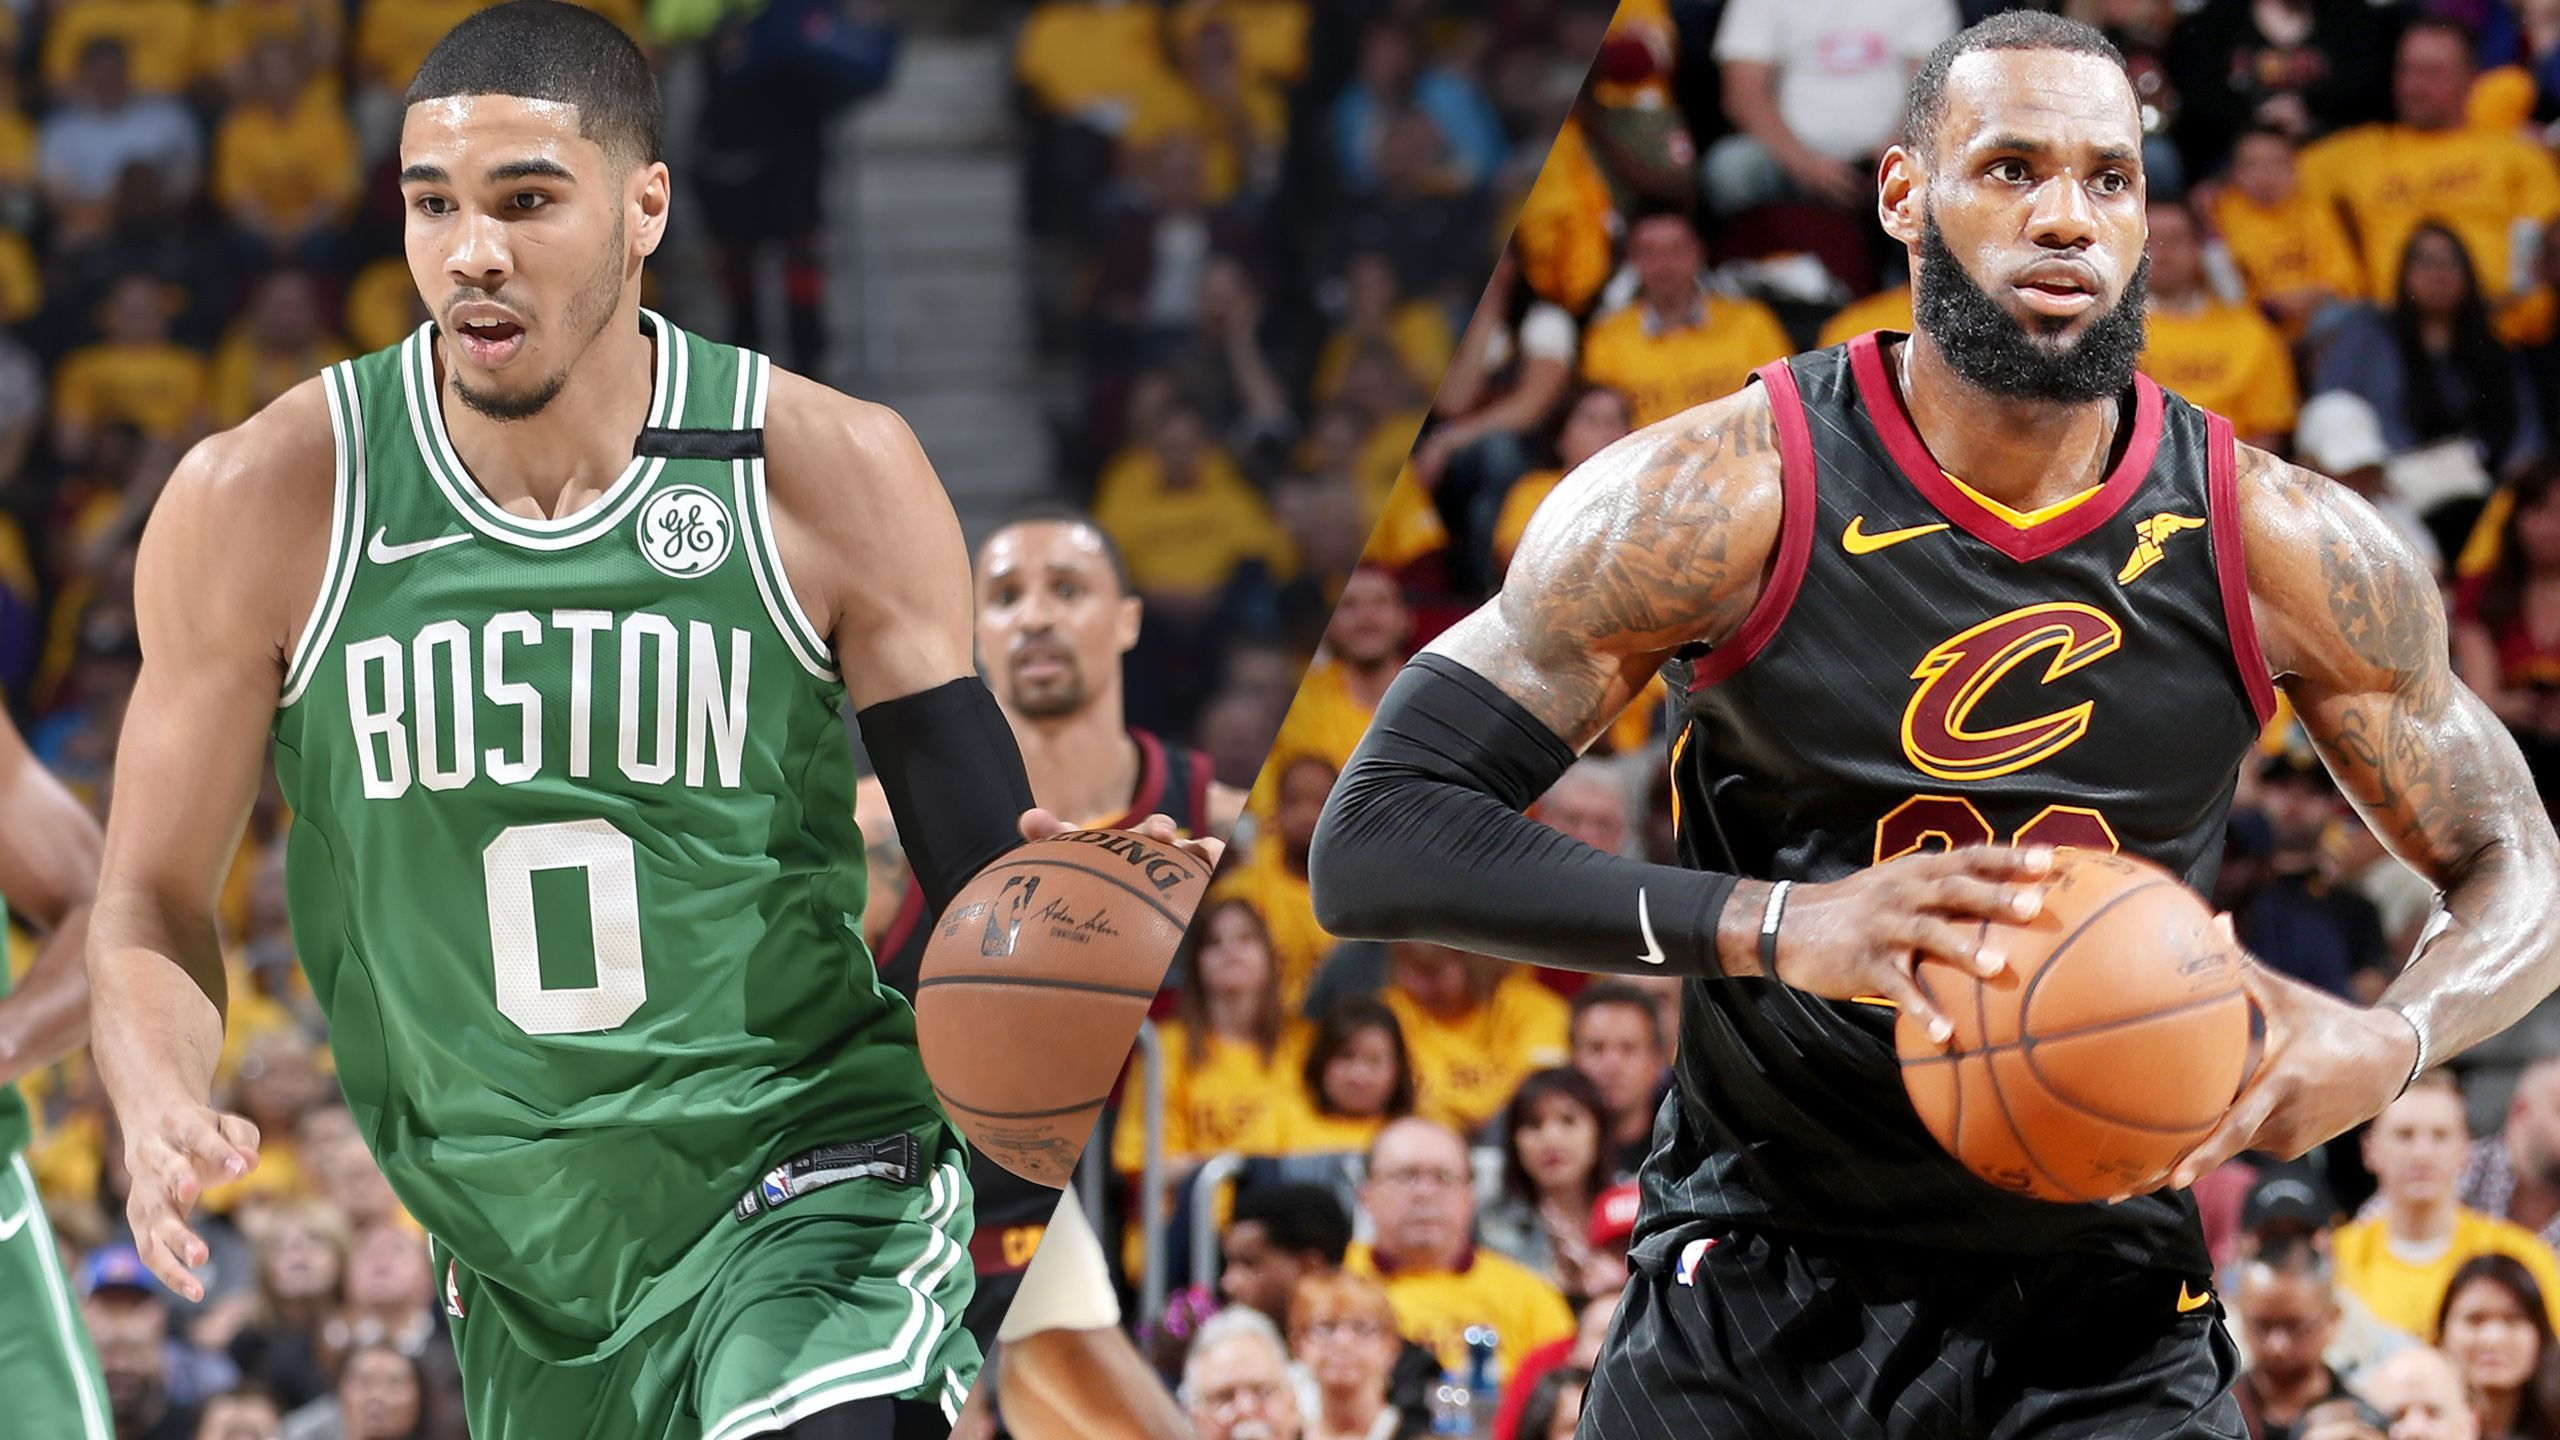 Boston Celtics vs. Cleveland Cavaliers (Conference Finals Game 6)